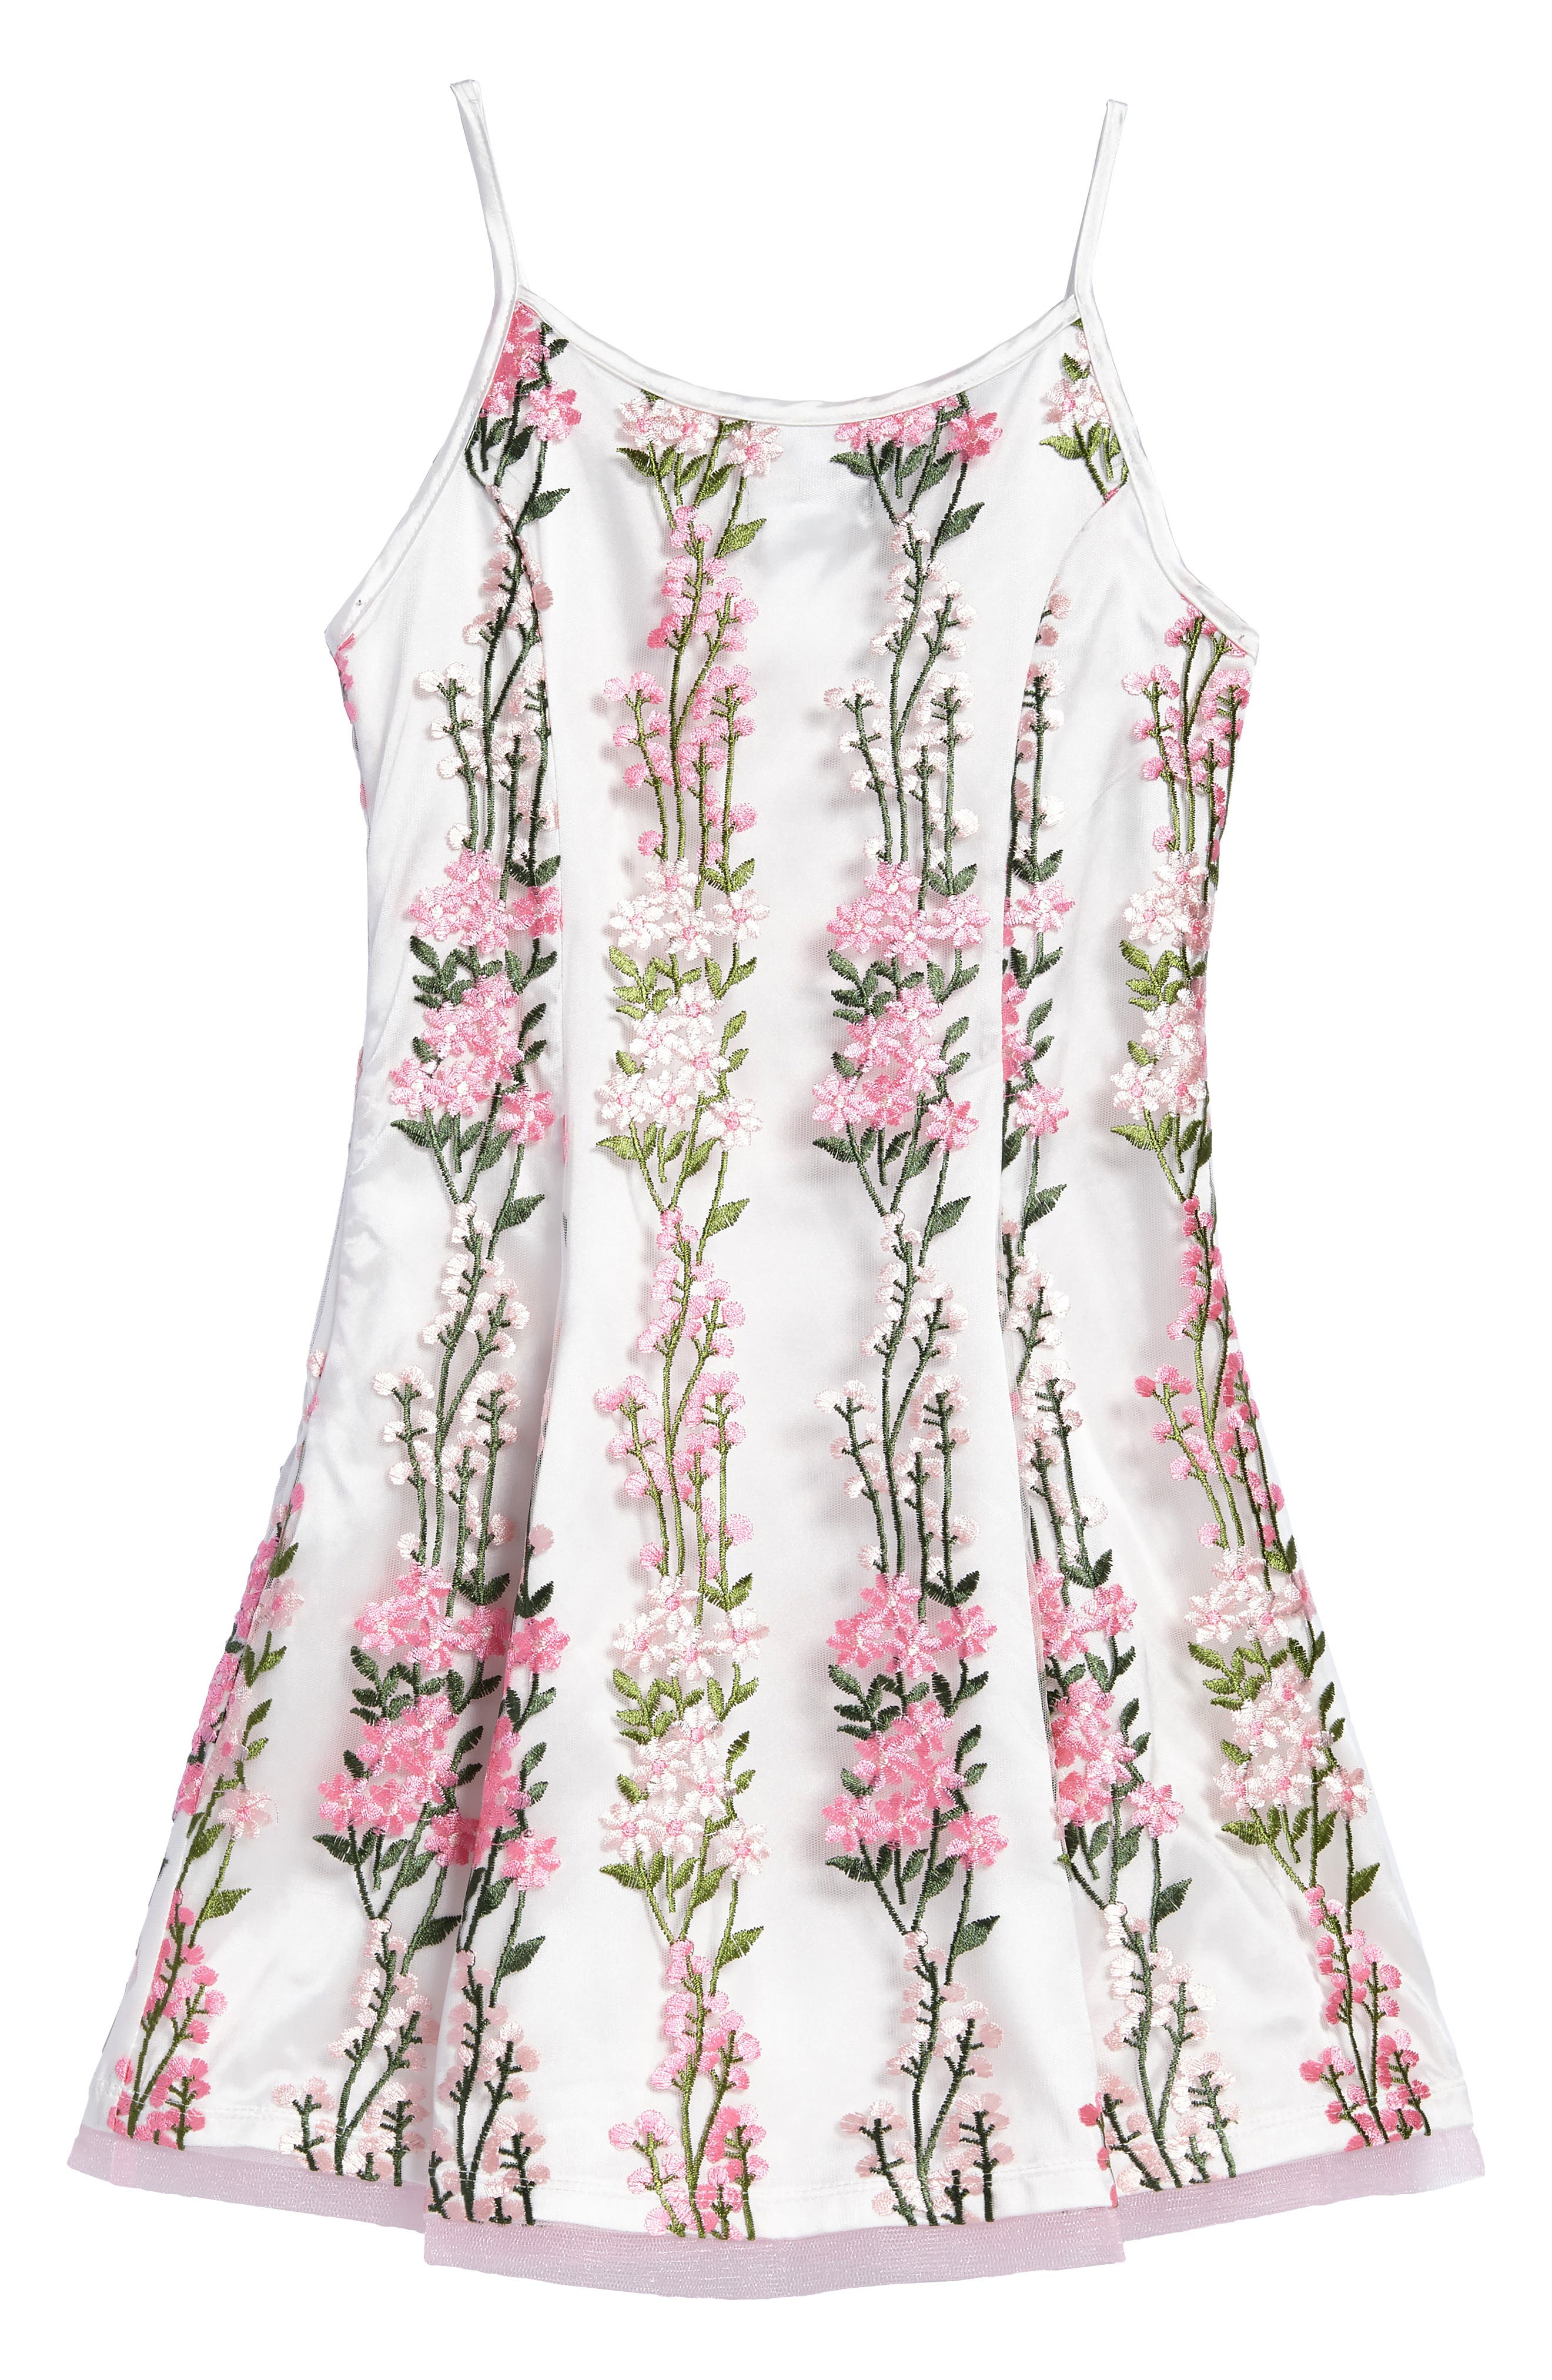 Floral Embroidered Dress,                             Alternate thumbnail 2, color,                             900